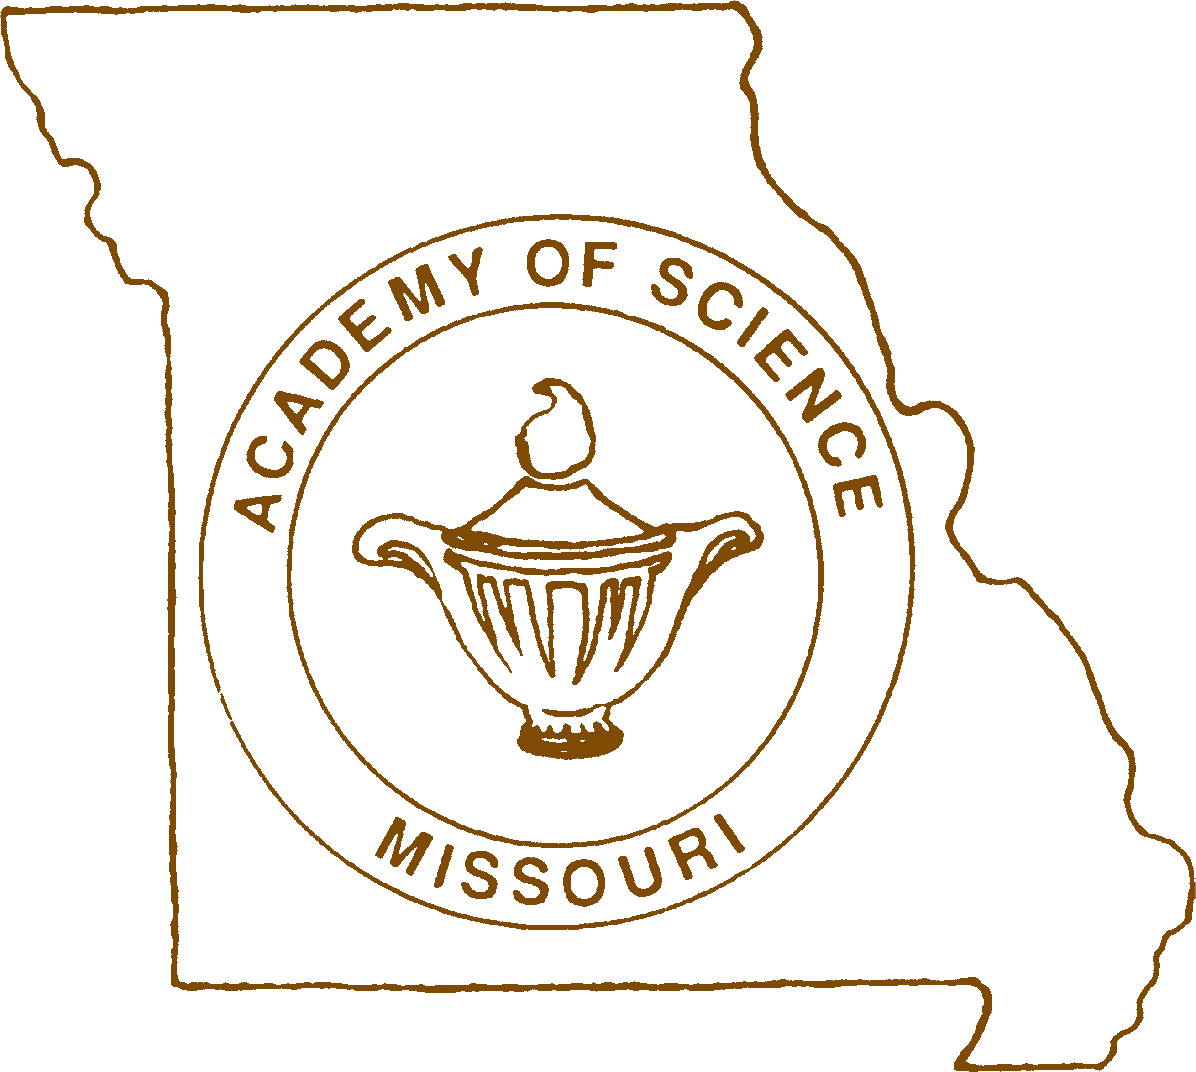 Missouri Academy of Science